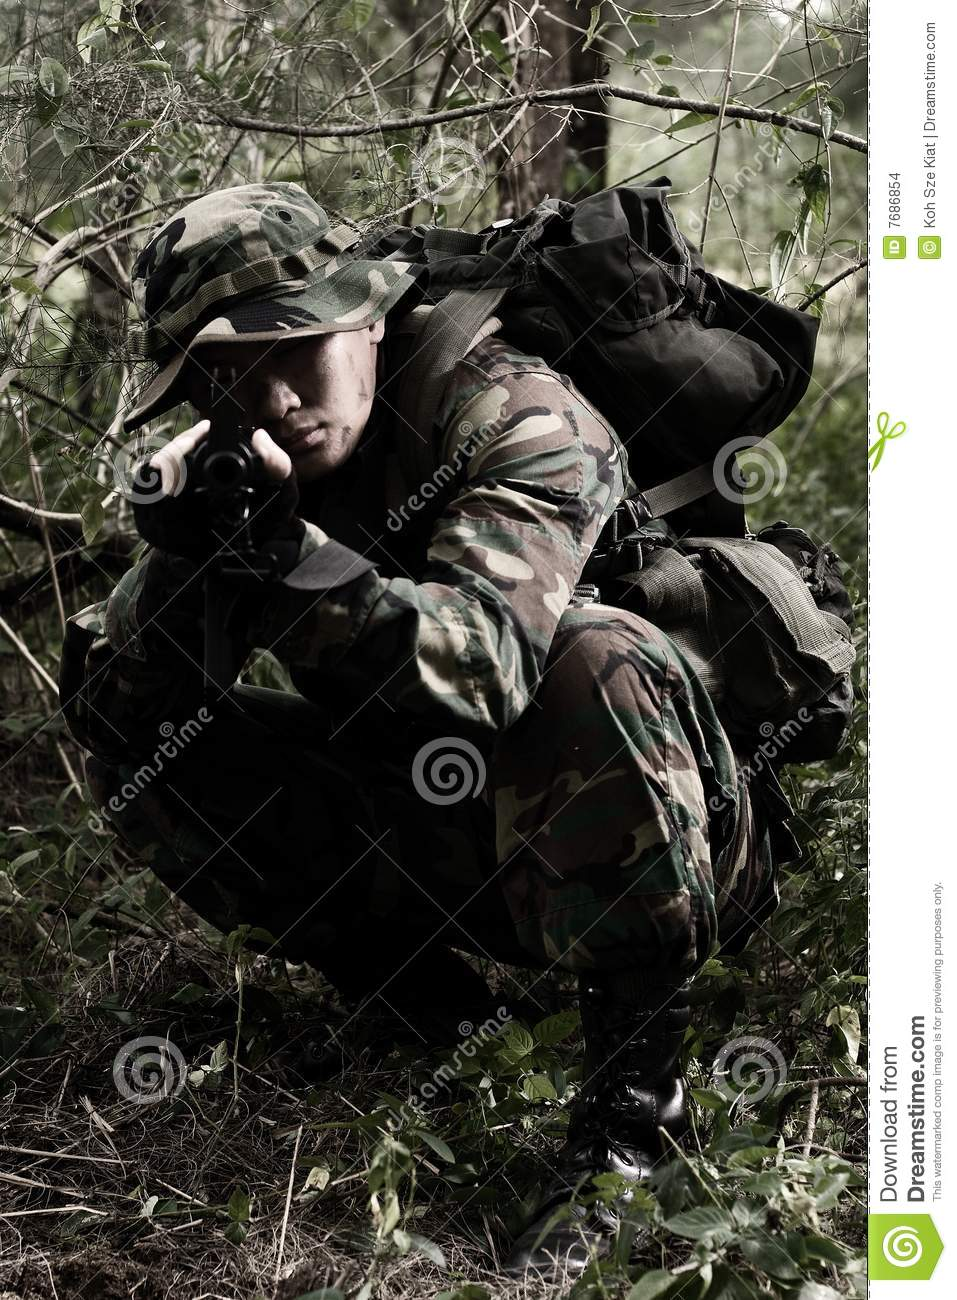 Soldat dans la jungle